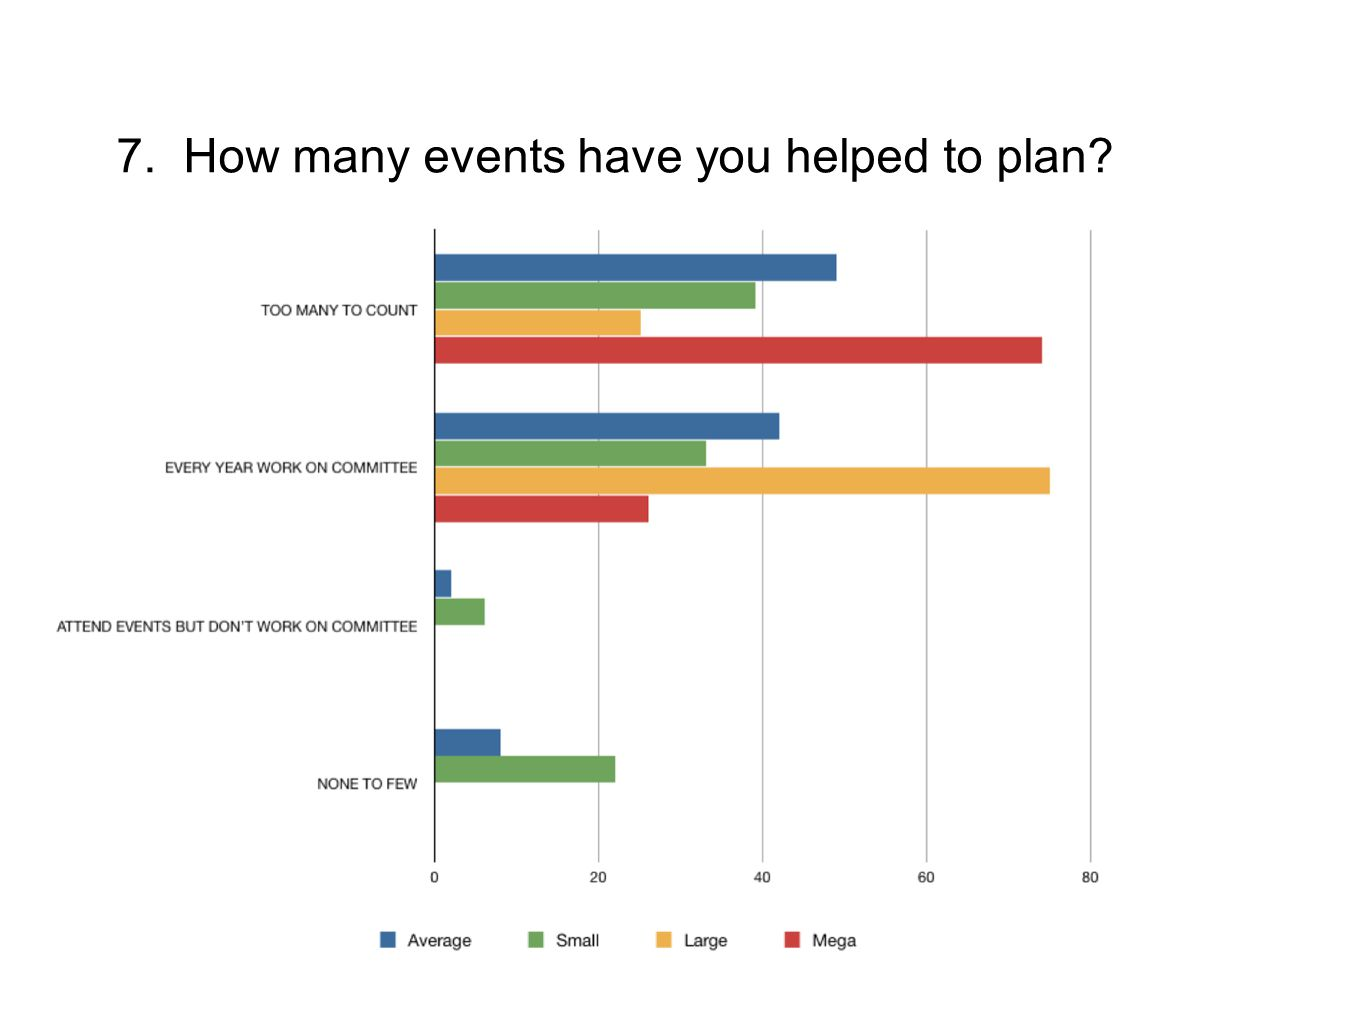 7. How many events have you helped to plan?